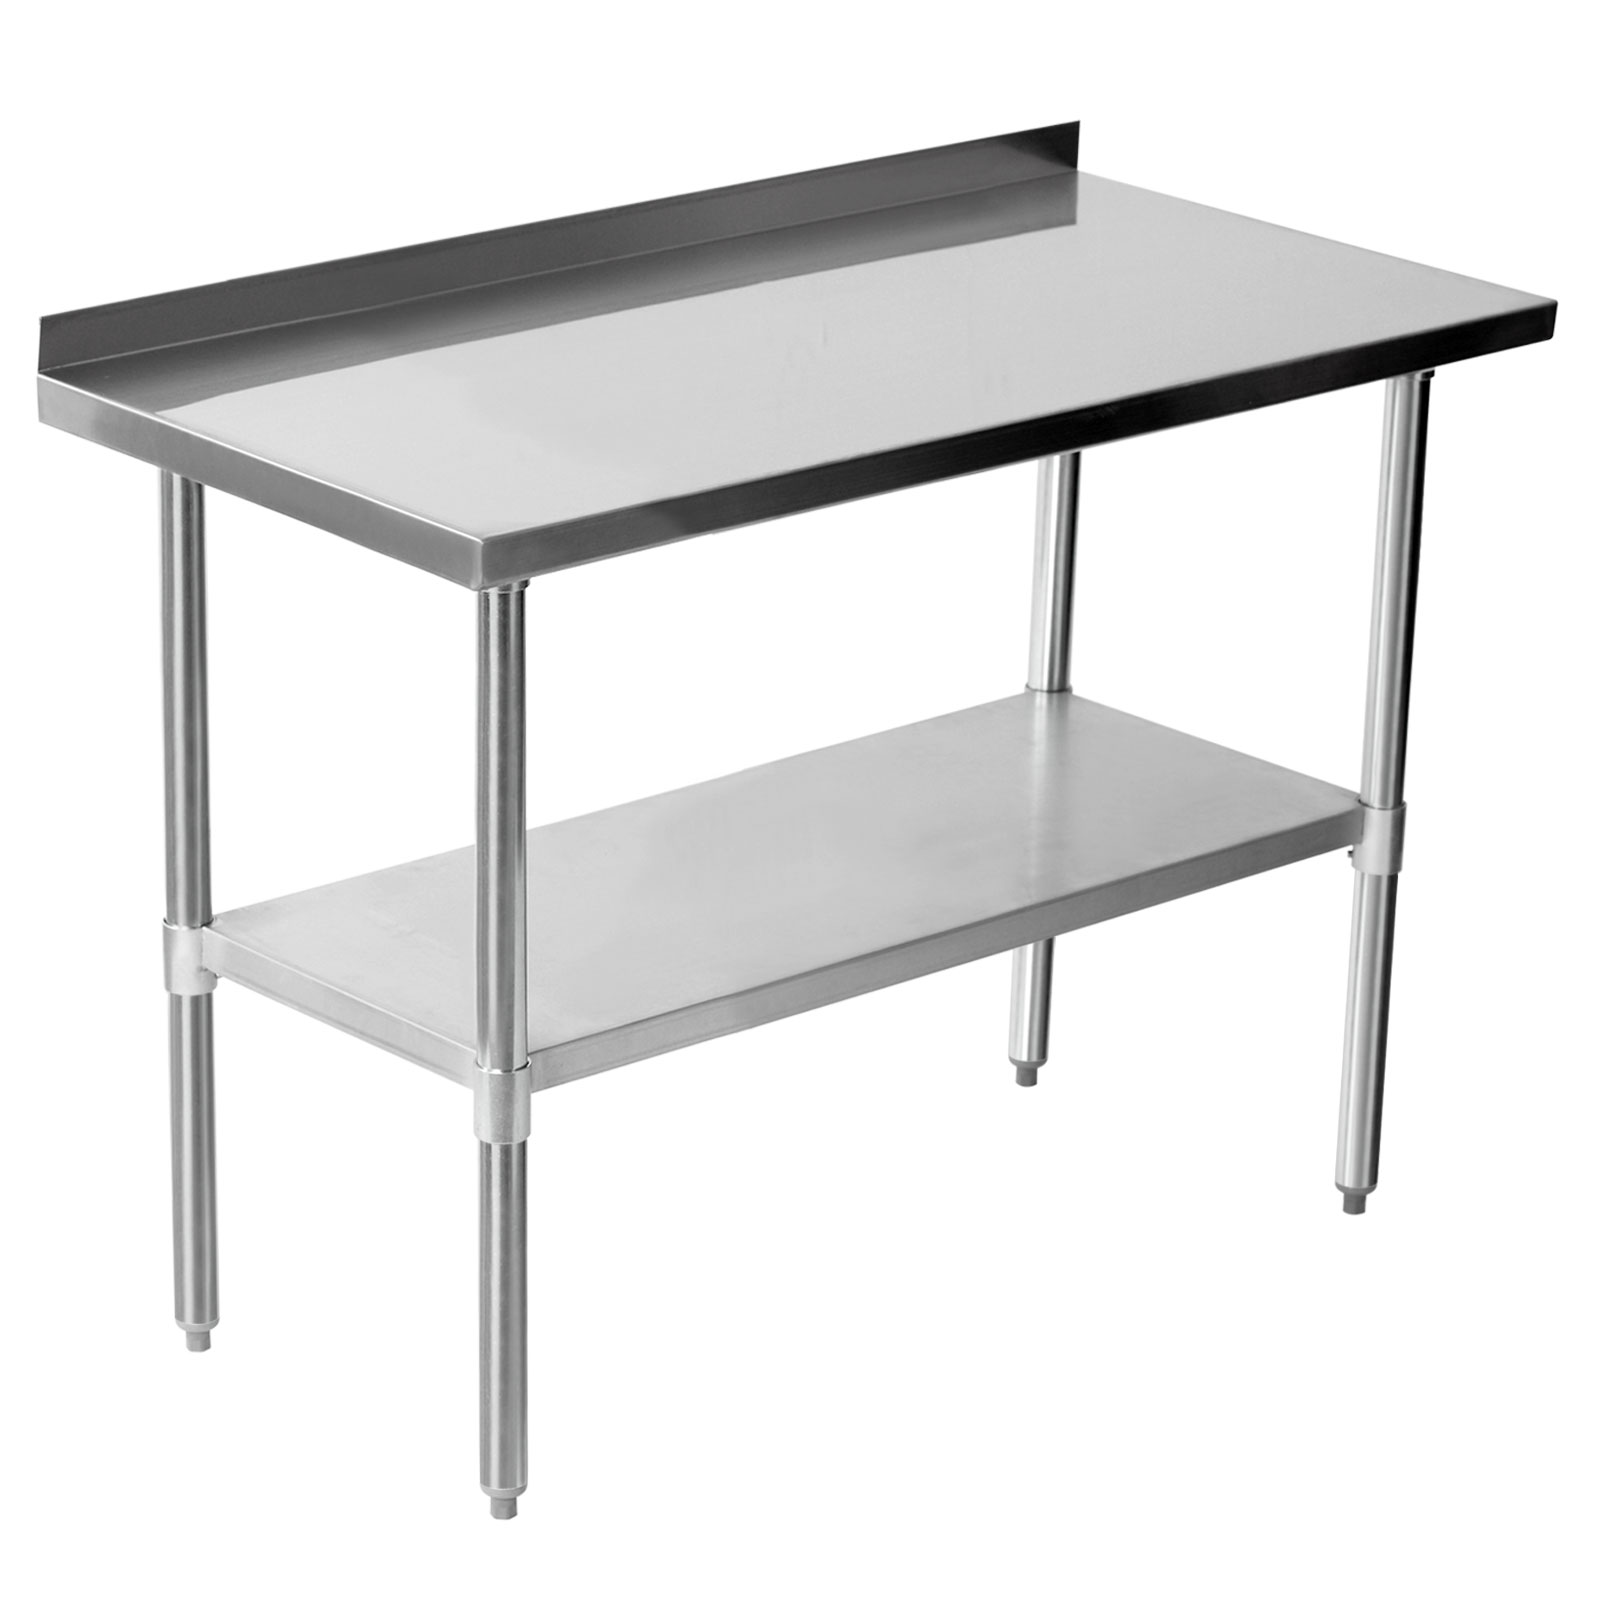 Industrial Work Table 25x40 Commercial Stainless Steel Work Bench Kitchen Catering